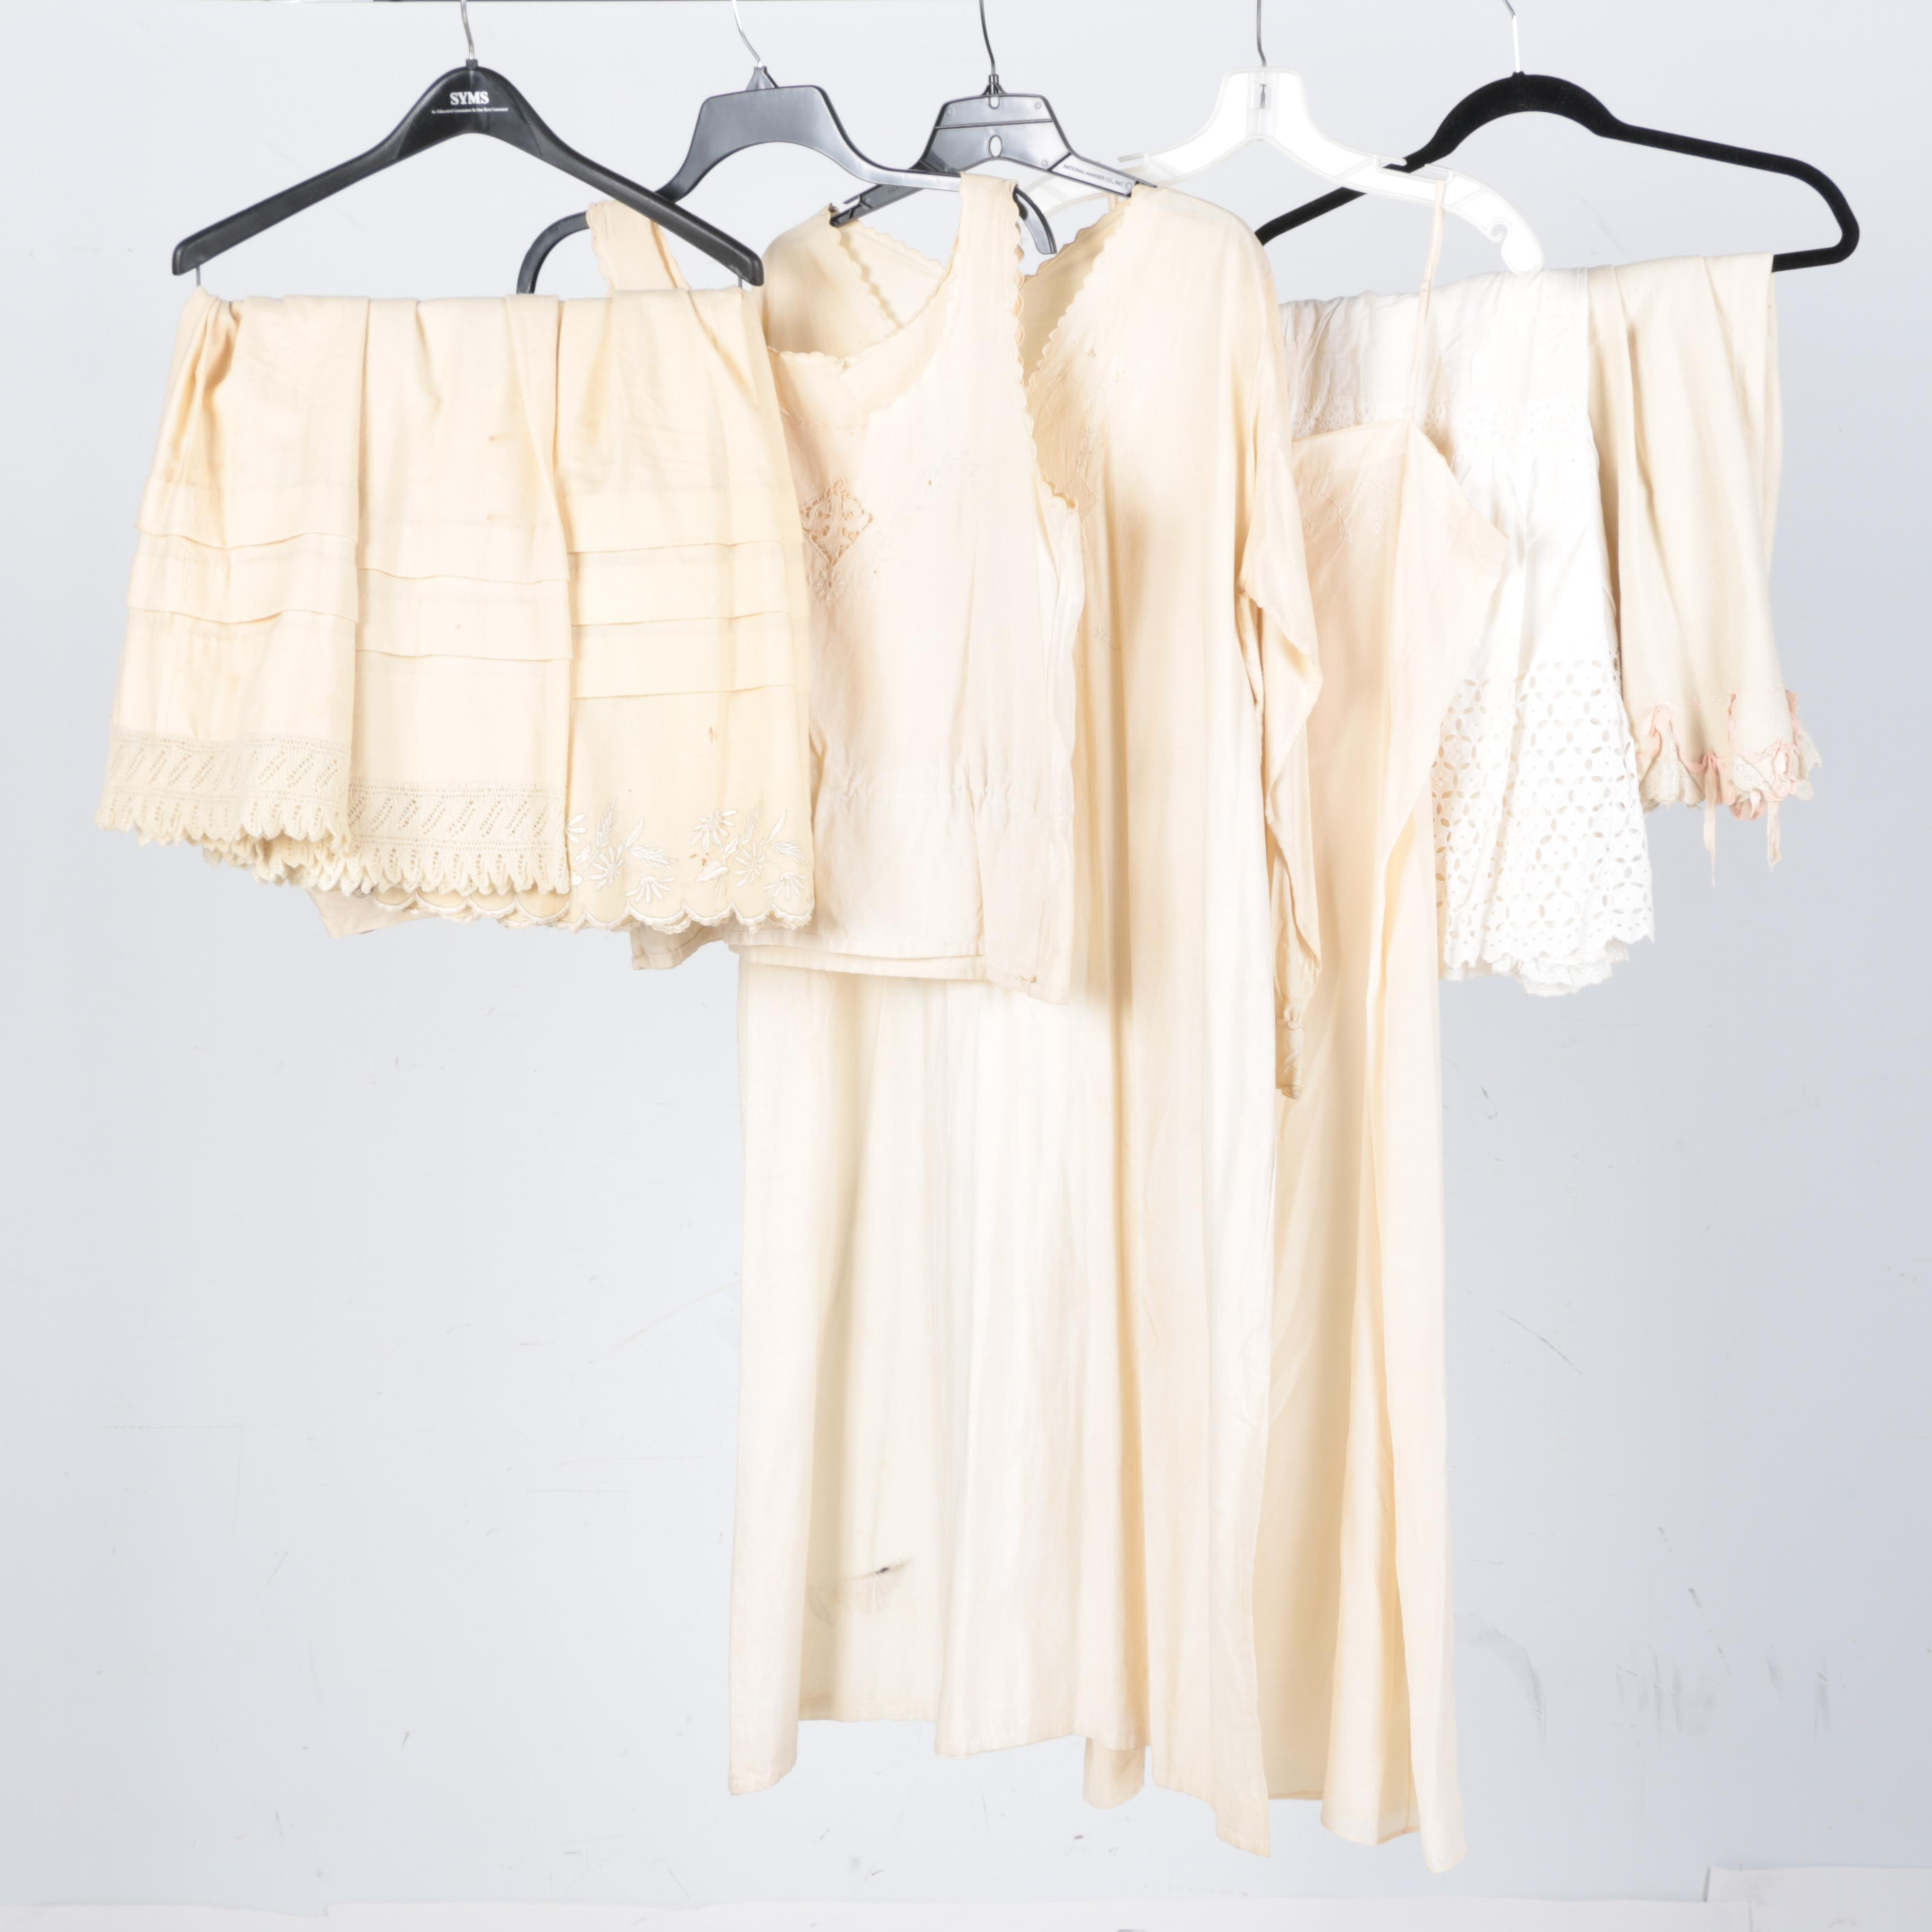 Ivory and White Cotton Clothing Including Franklin Simon's